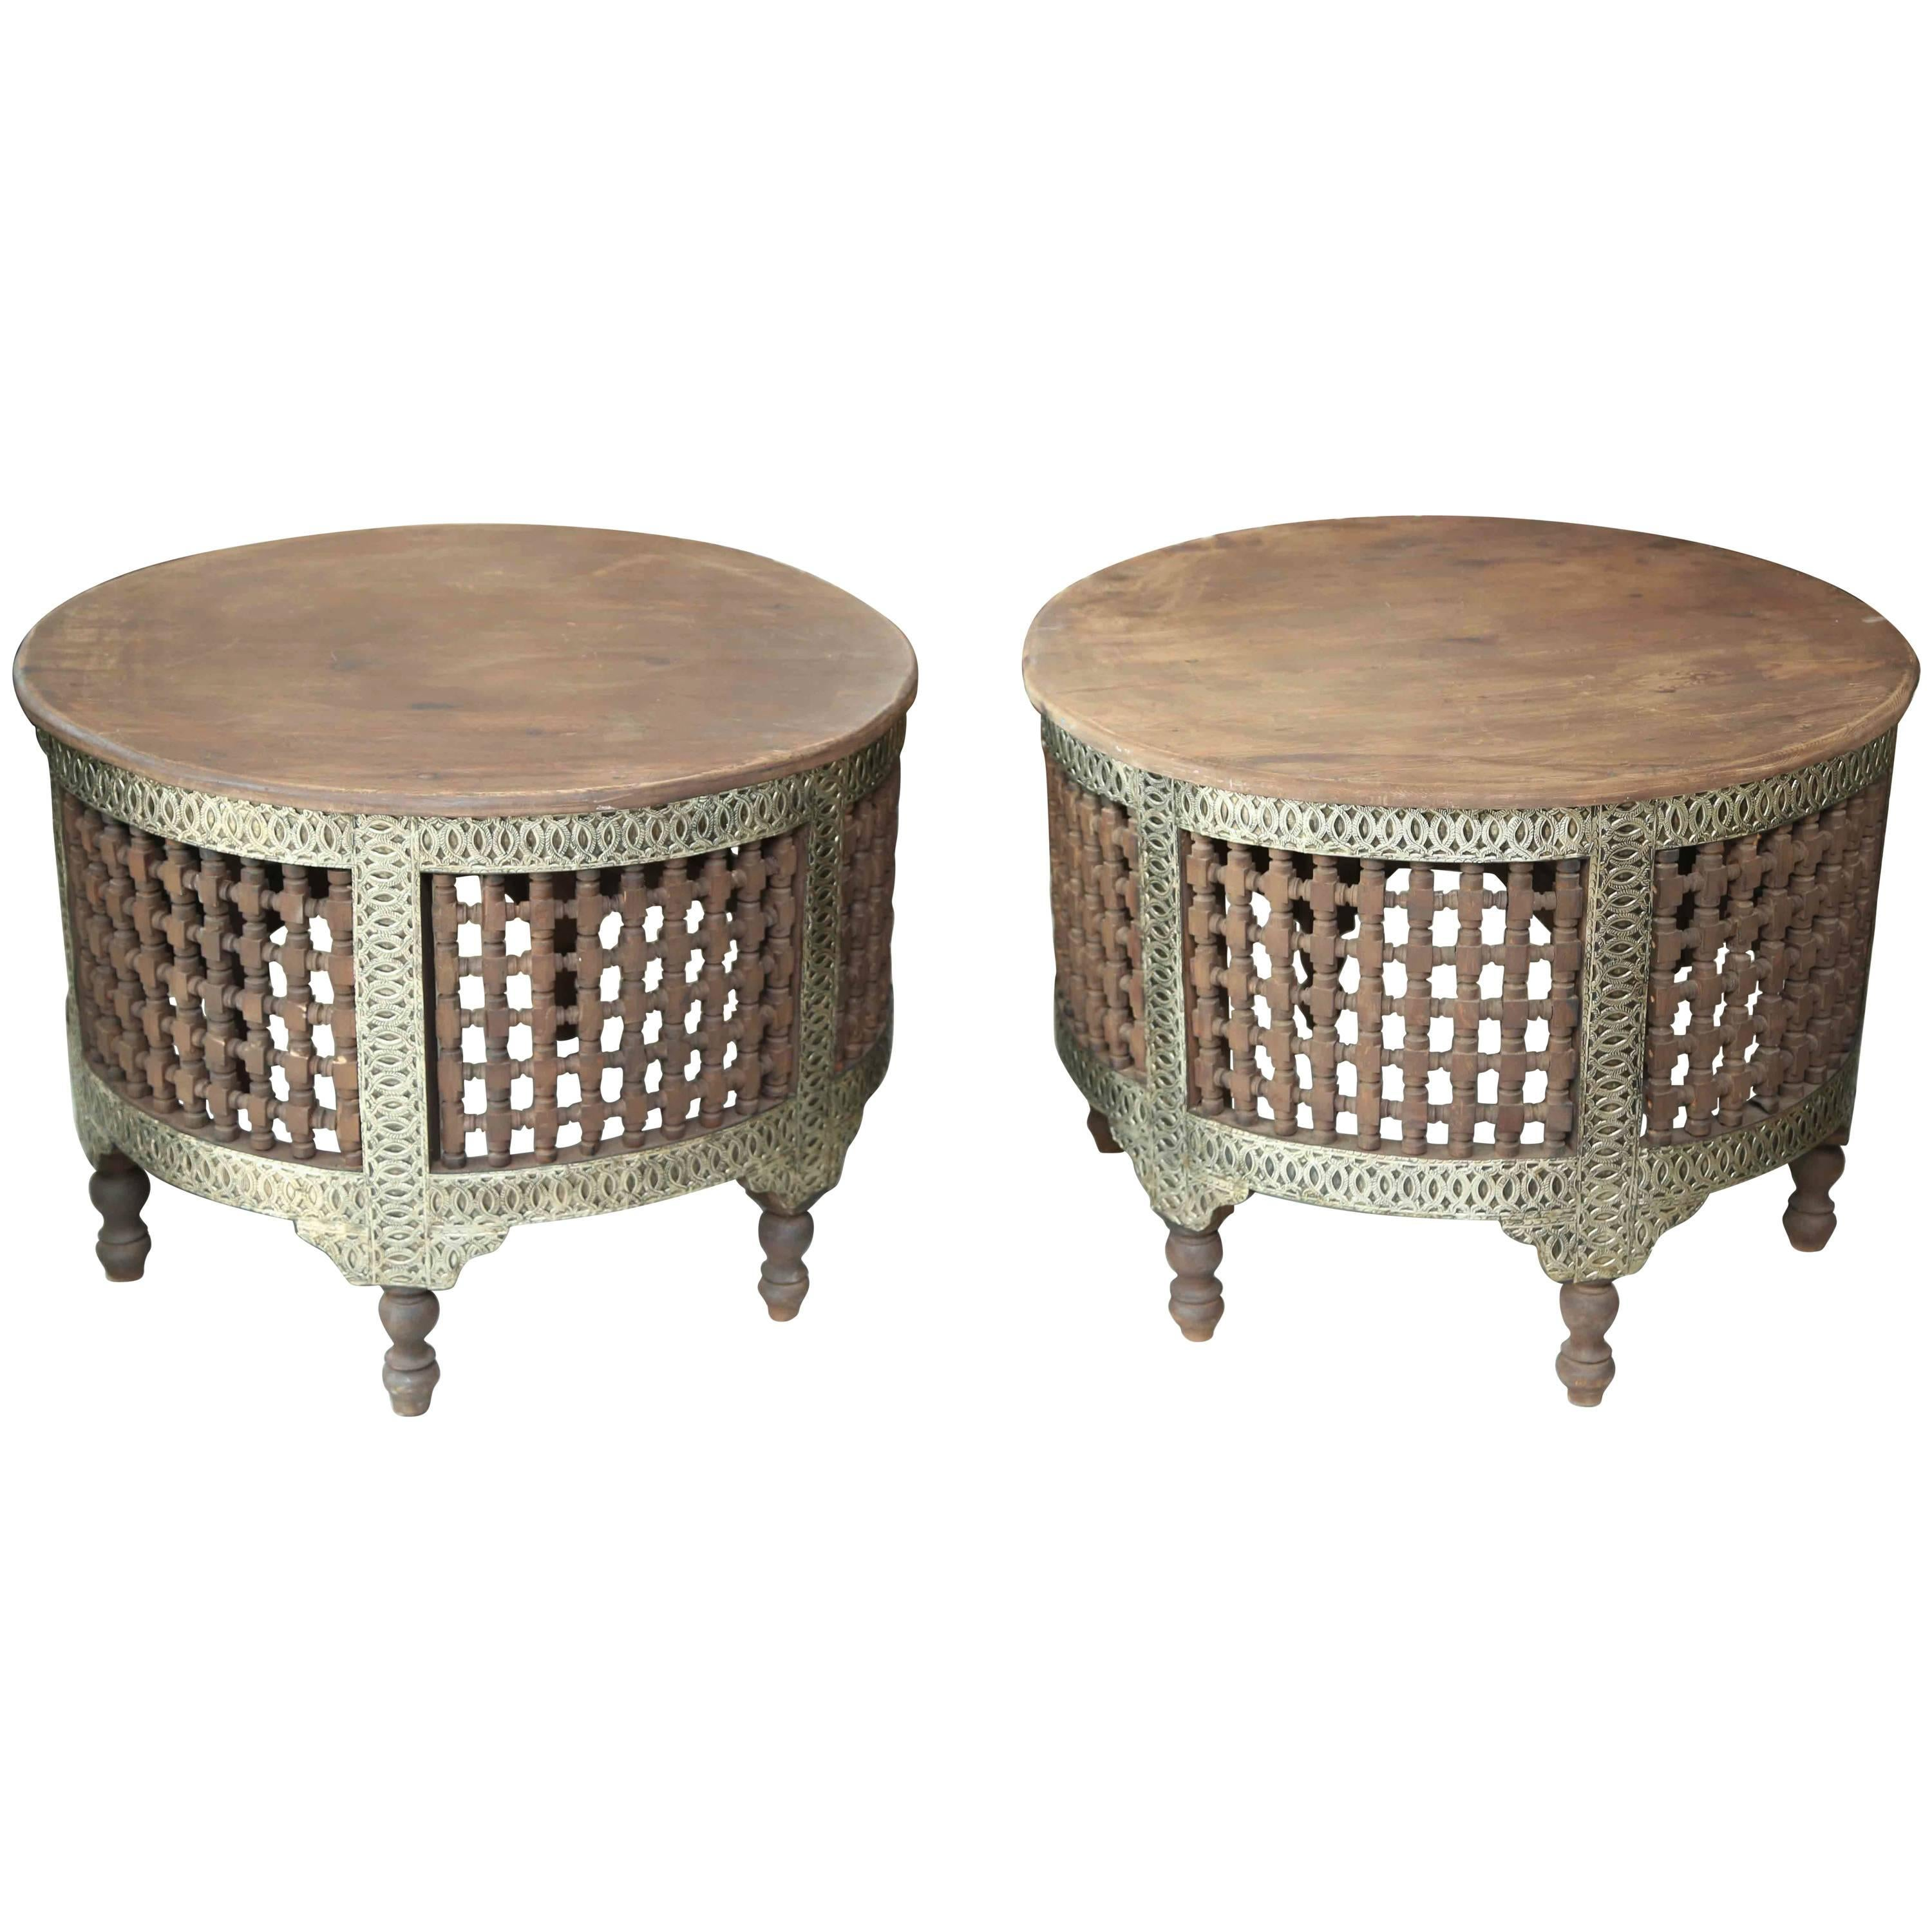 Superb Pair of Two Round Moroccan Coffee Tables at 1stdibs